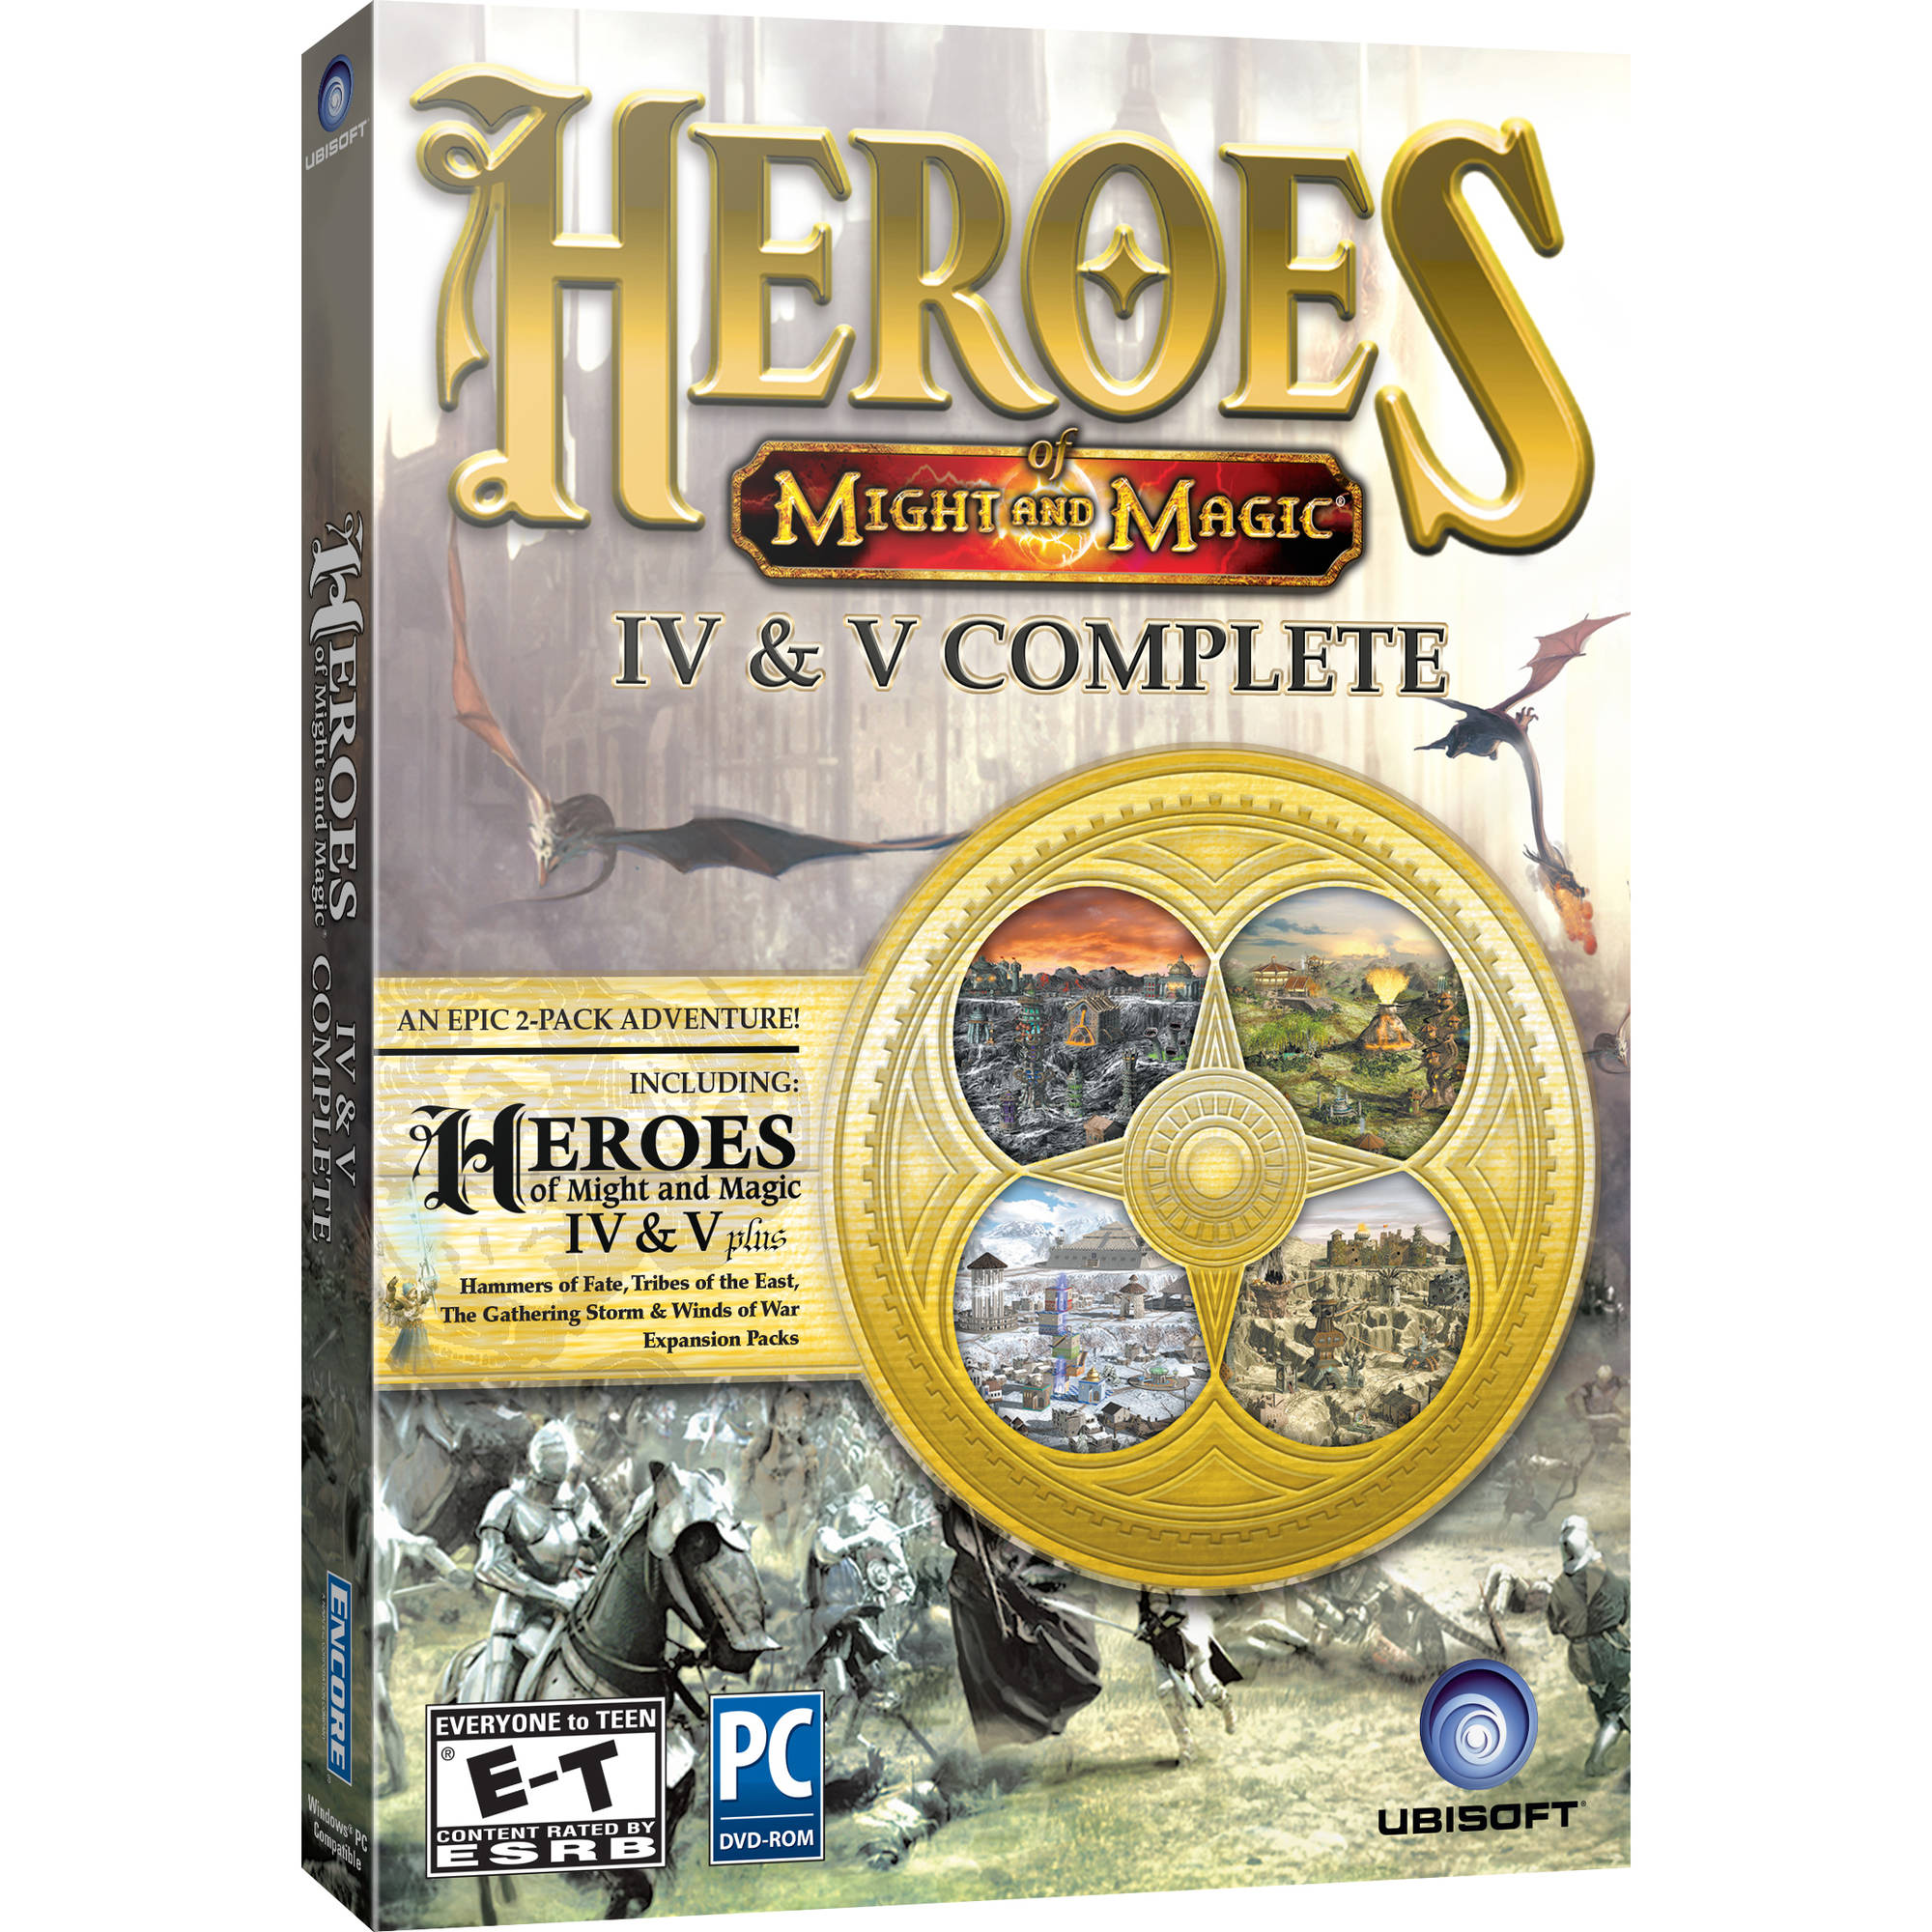 Heroes of Might and Magic 4 and 5 (PC)